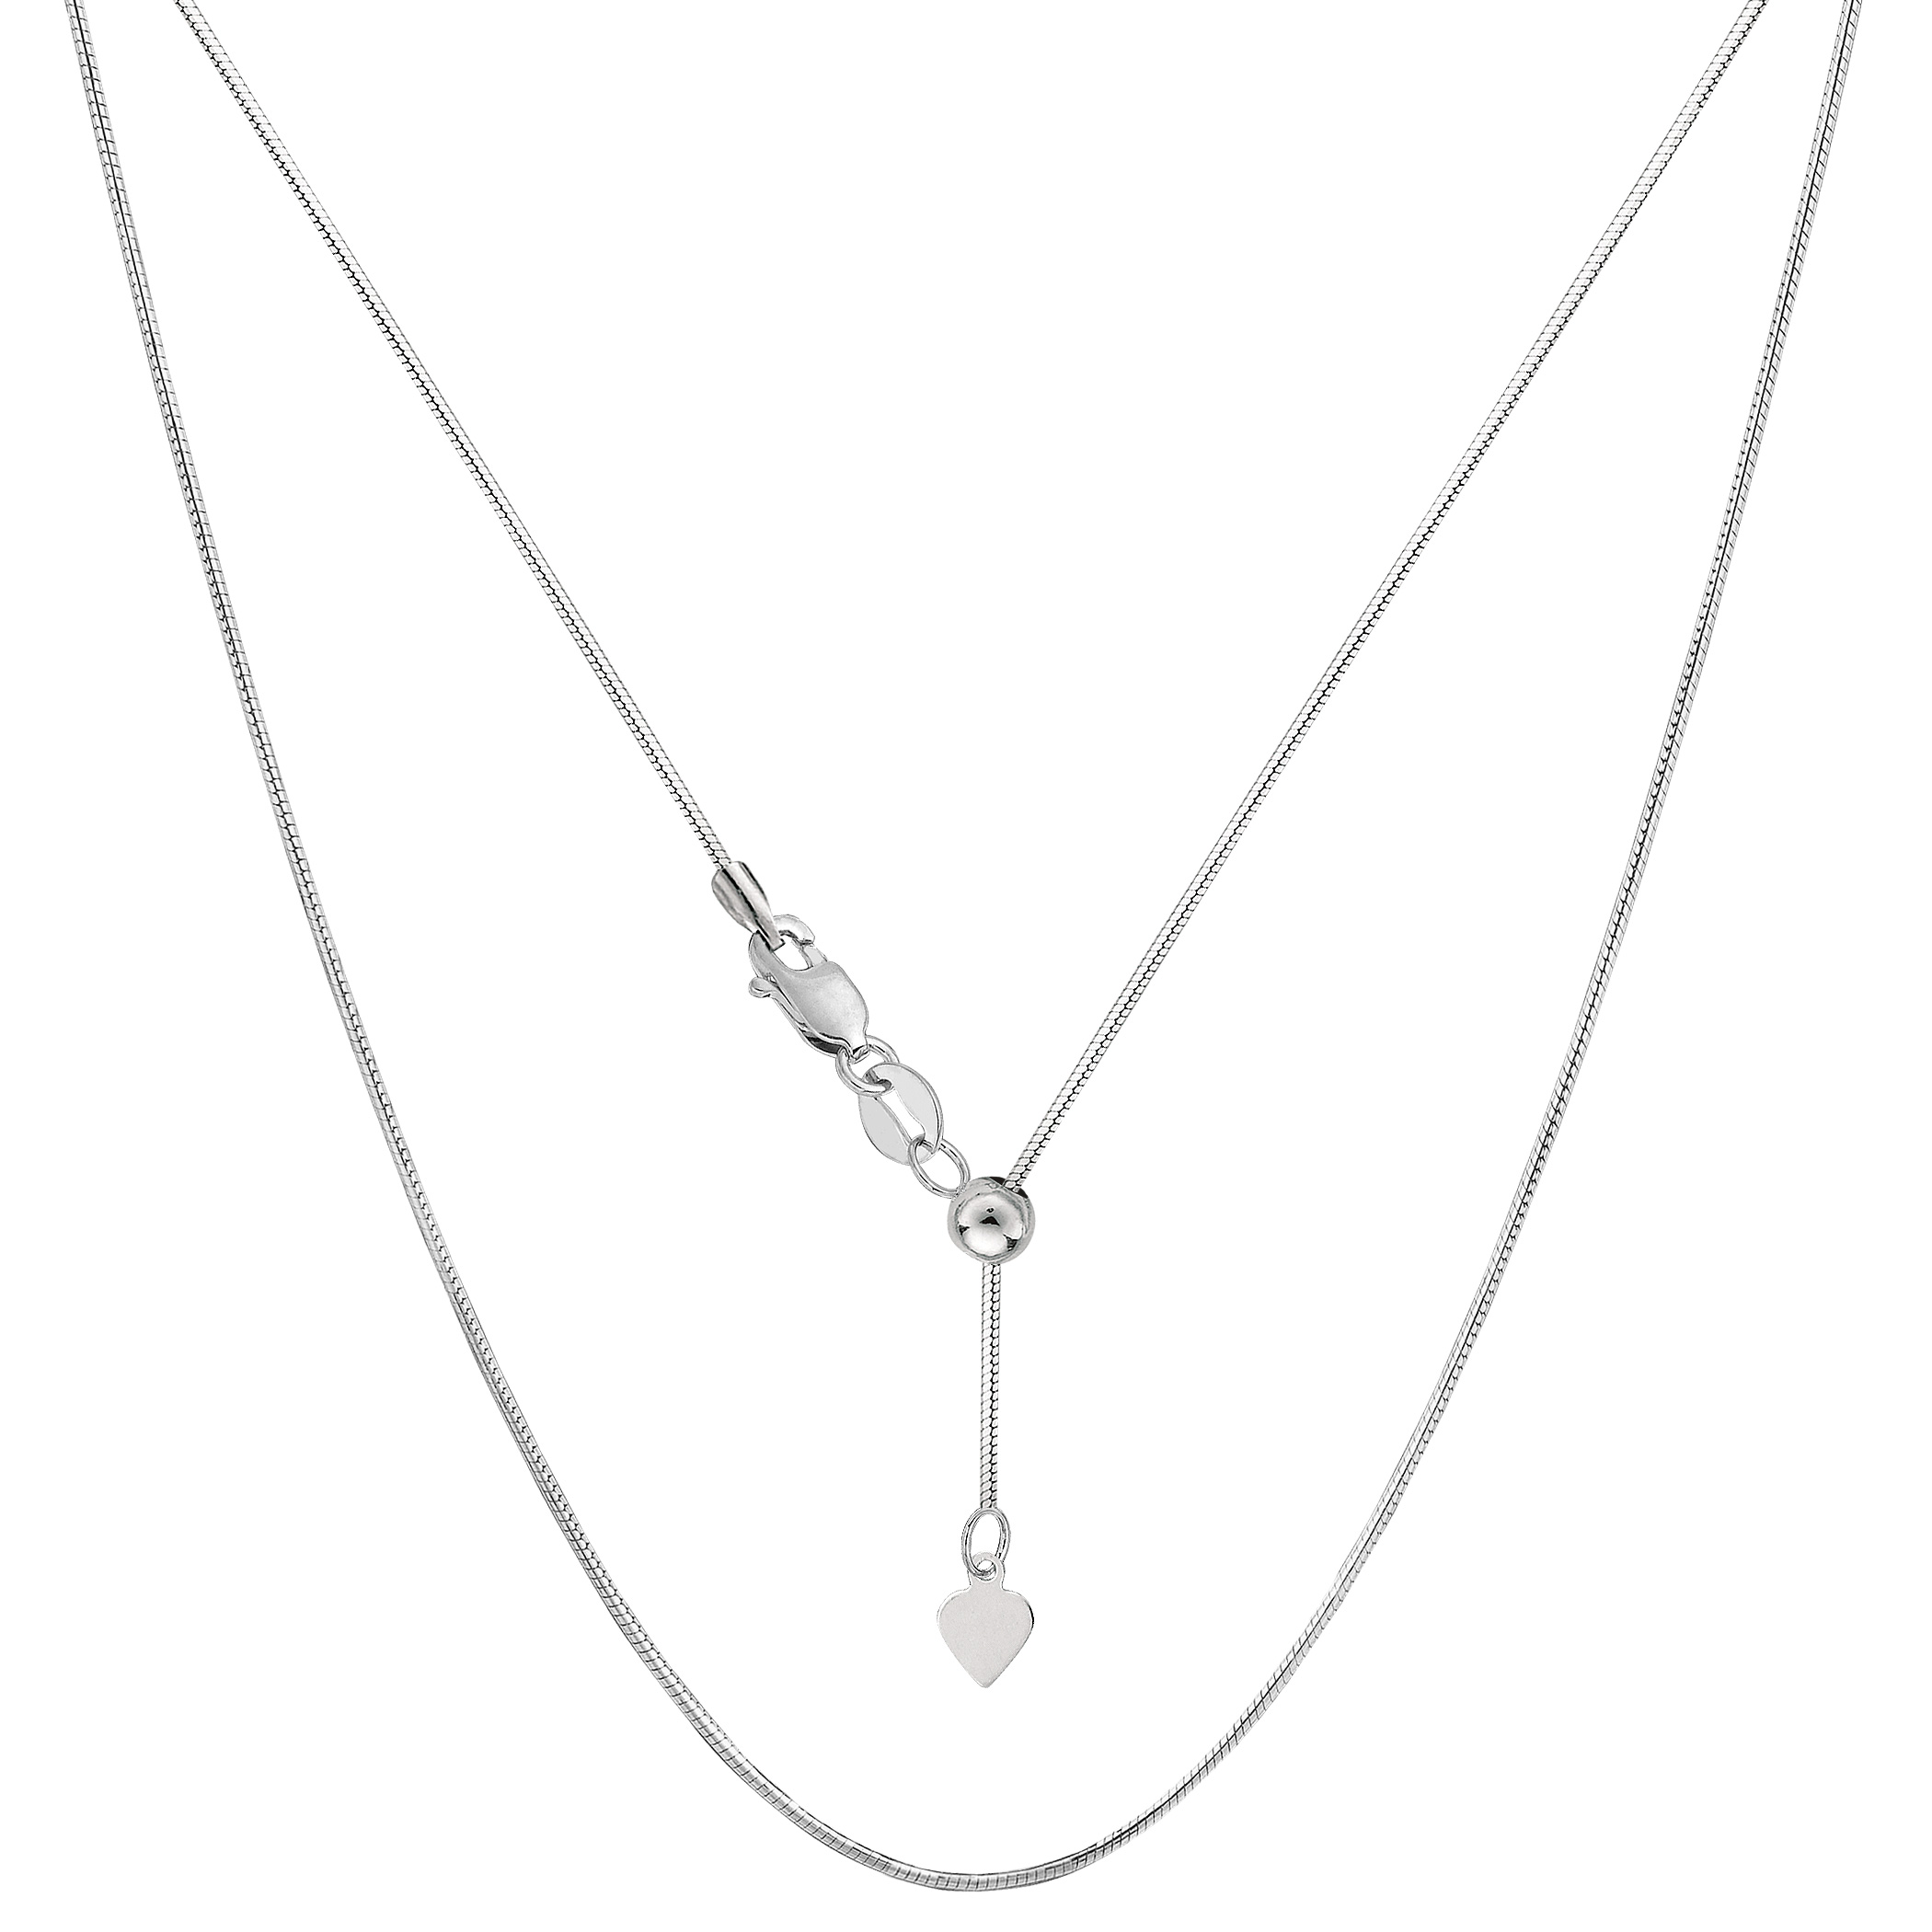 Sterling Silver Rhodium Plated Sliding Adjustable Snake Chain, 22  Using it by itself or combining it with charms and pendants, this 22 inch long adjustable snake style chain is a perfect addition to any jewelry fashionista collection.